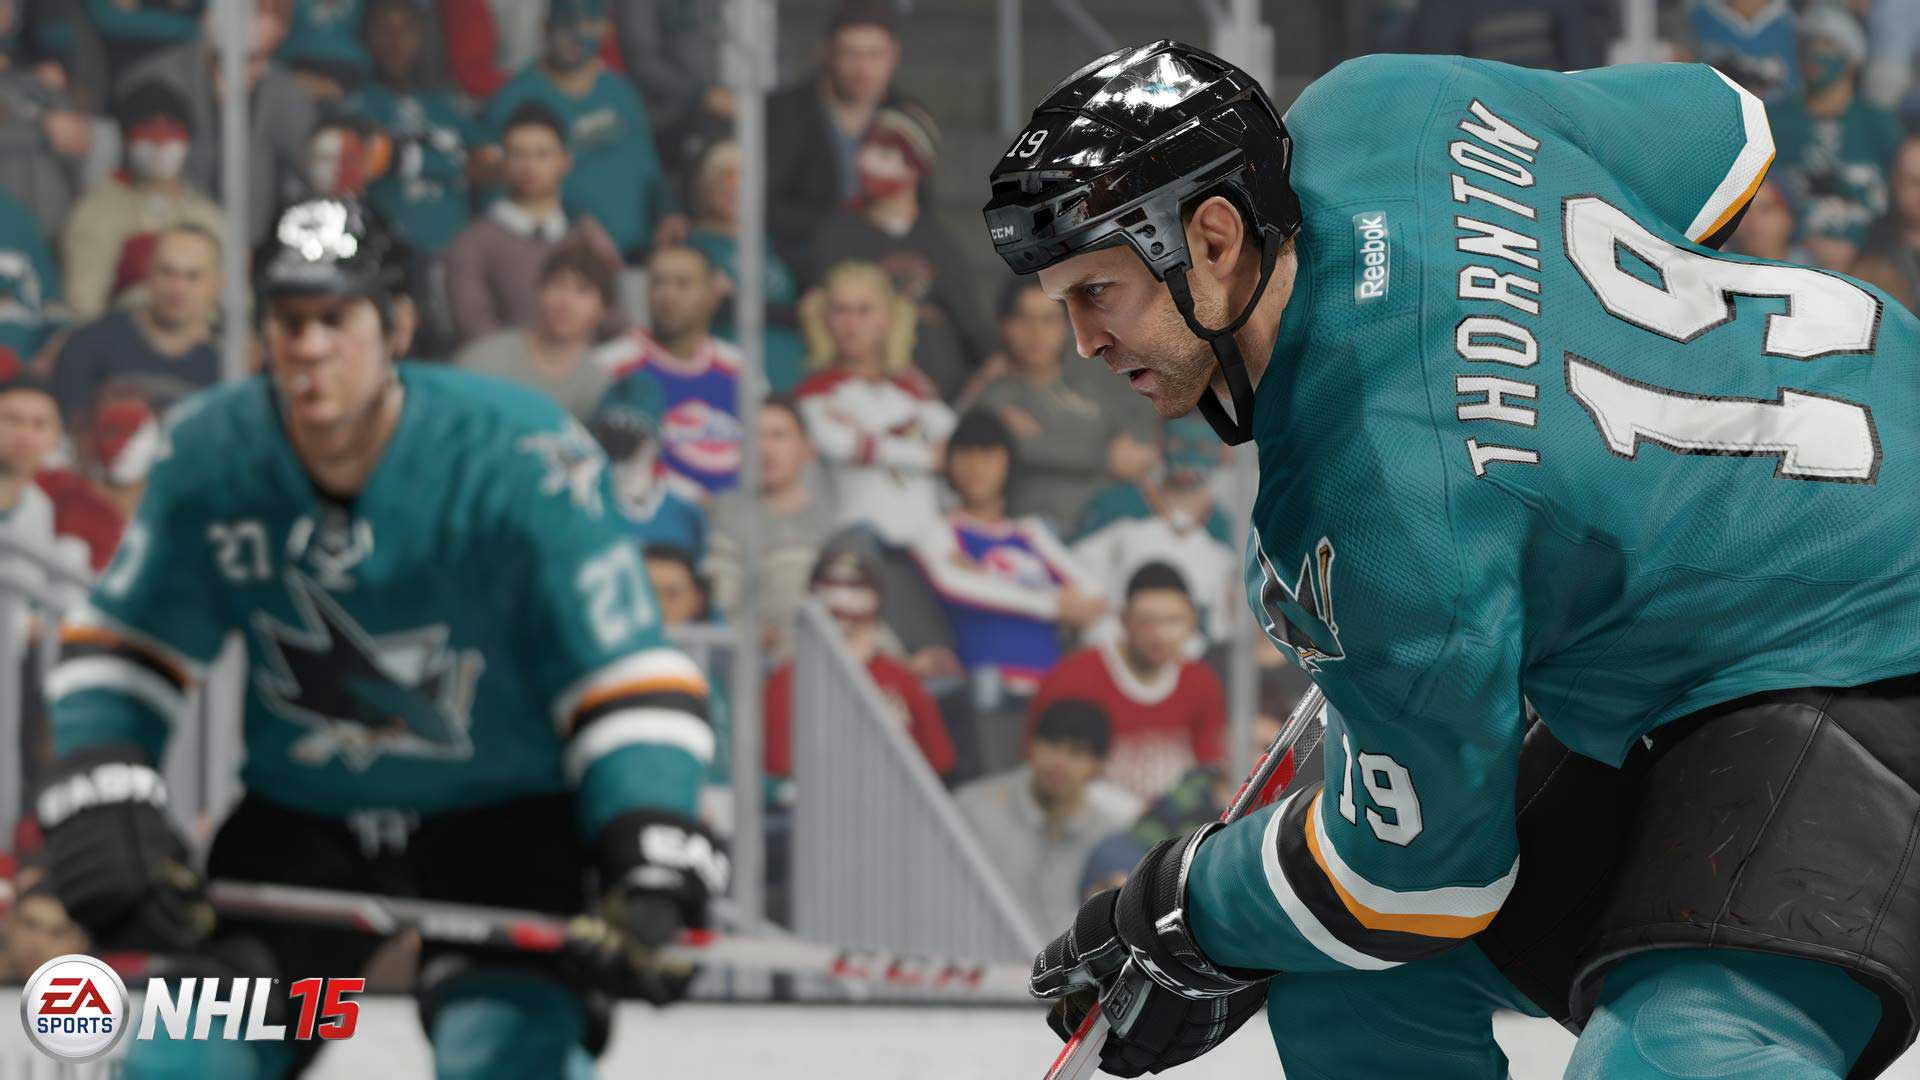 nhl15-first-image